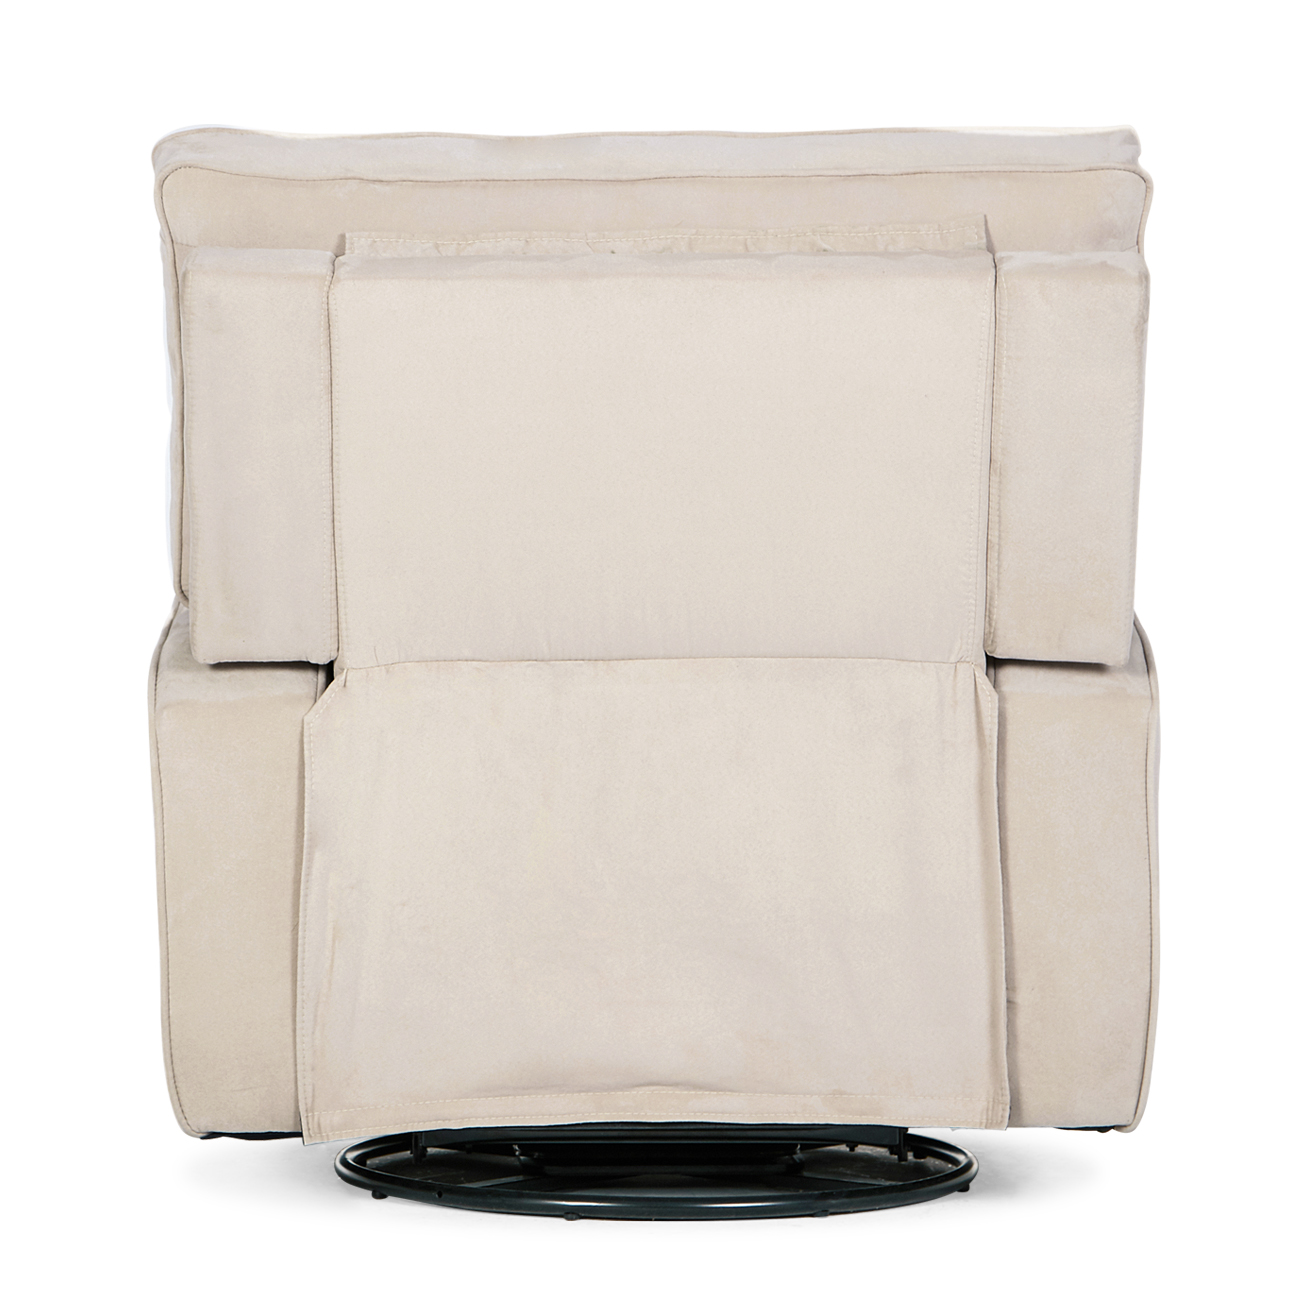 Details About Padded Upholstered Extra Cushion Full Swivel Glider Recliner Living Room